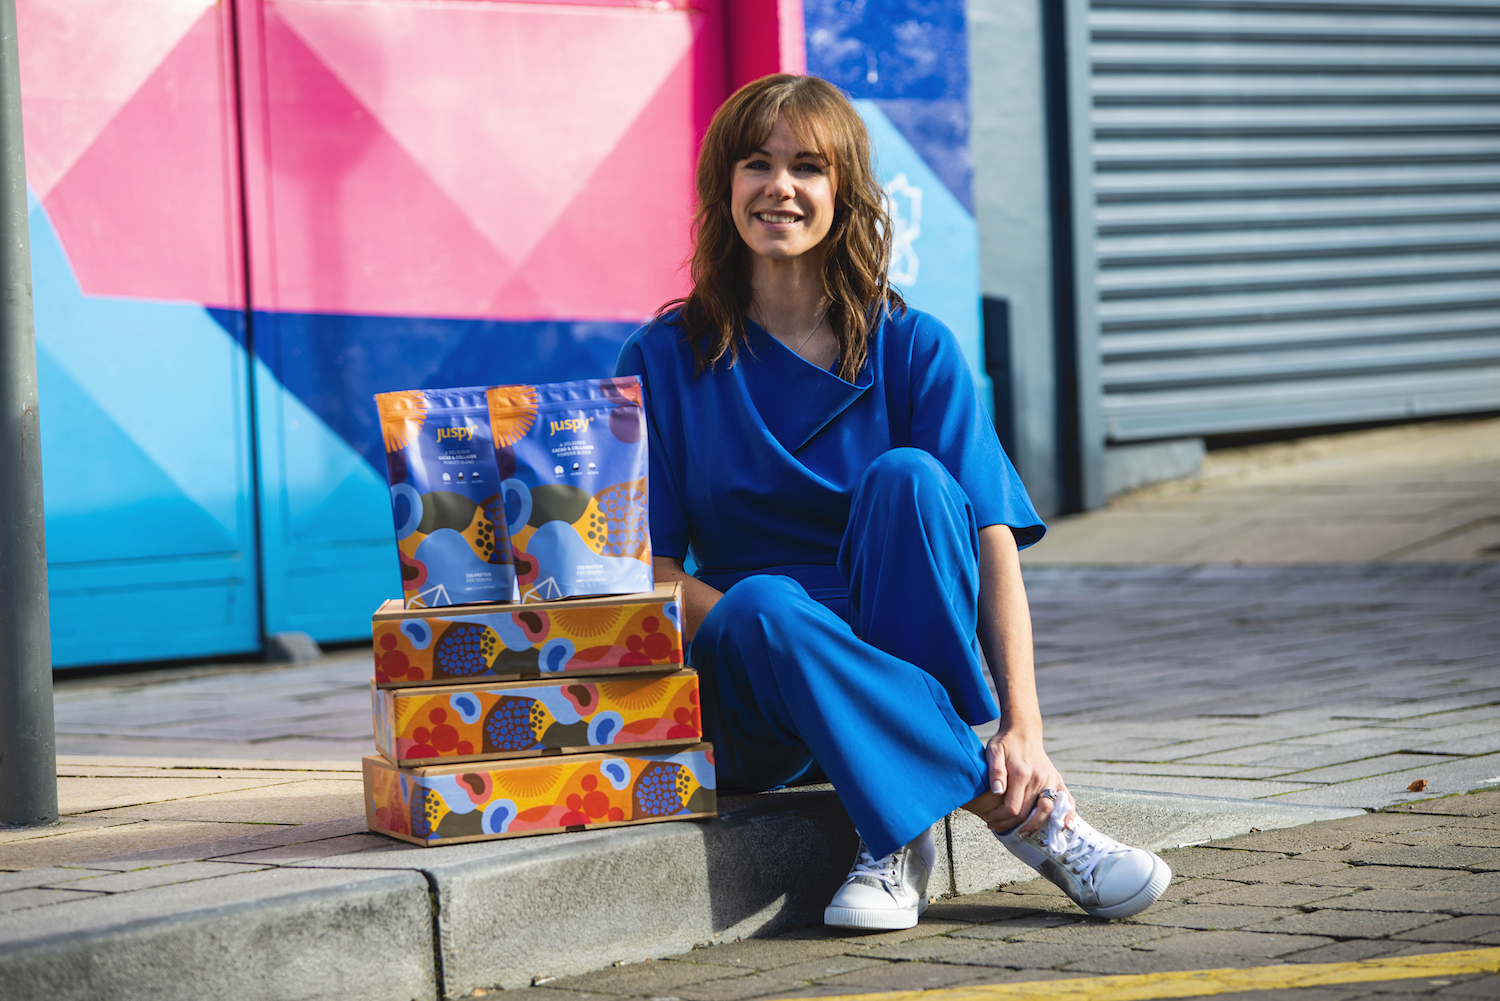 Limerick woman, Leonie Lynch, founder of Juspy functional foods